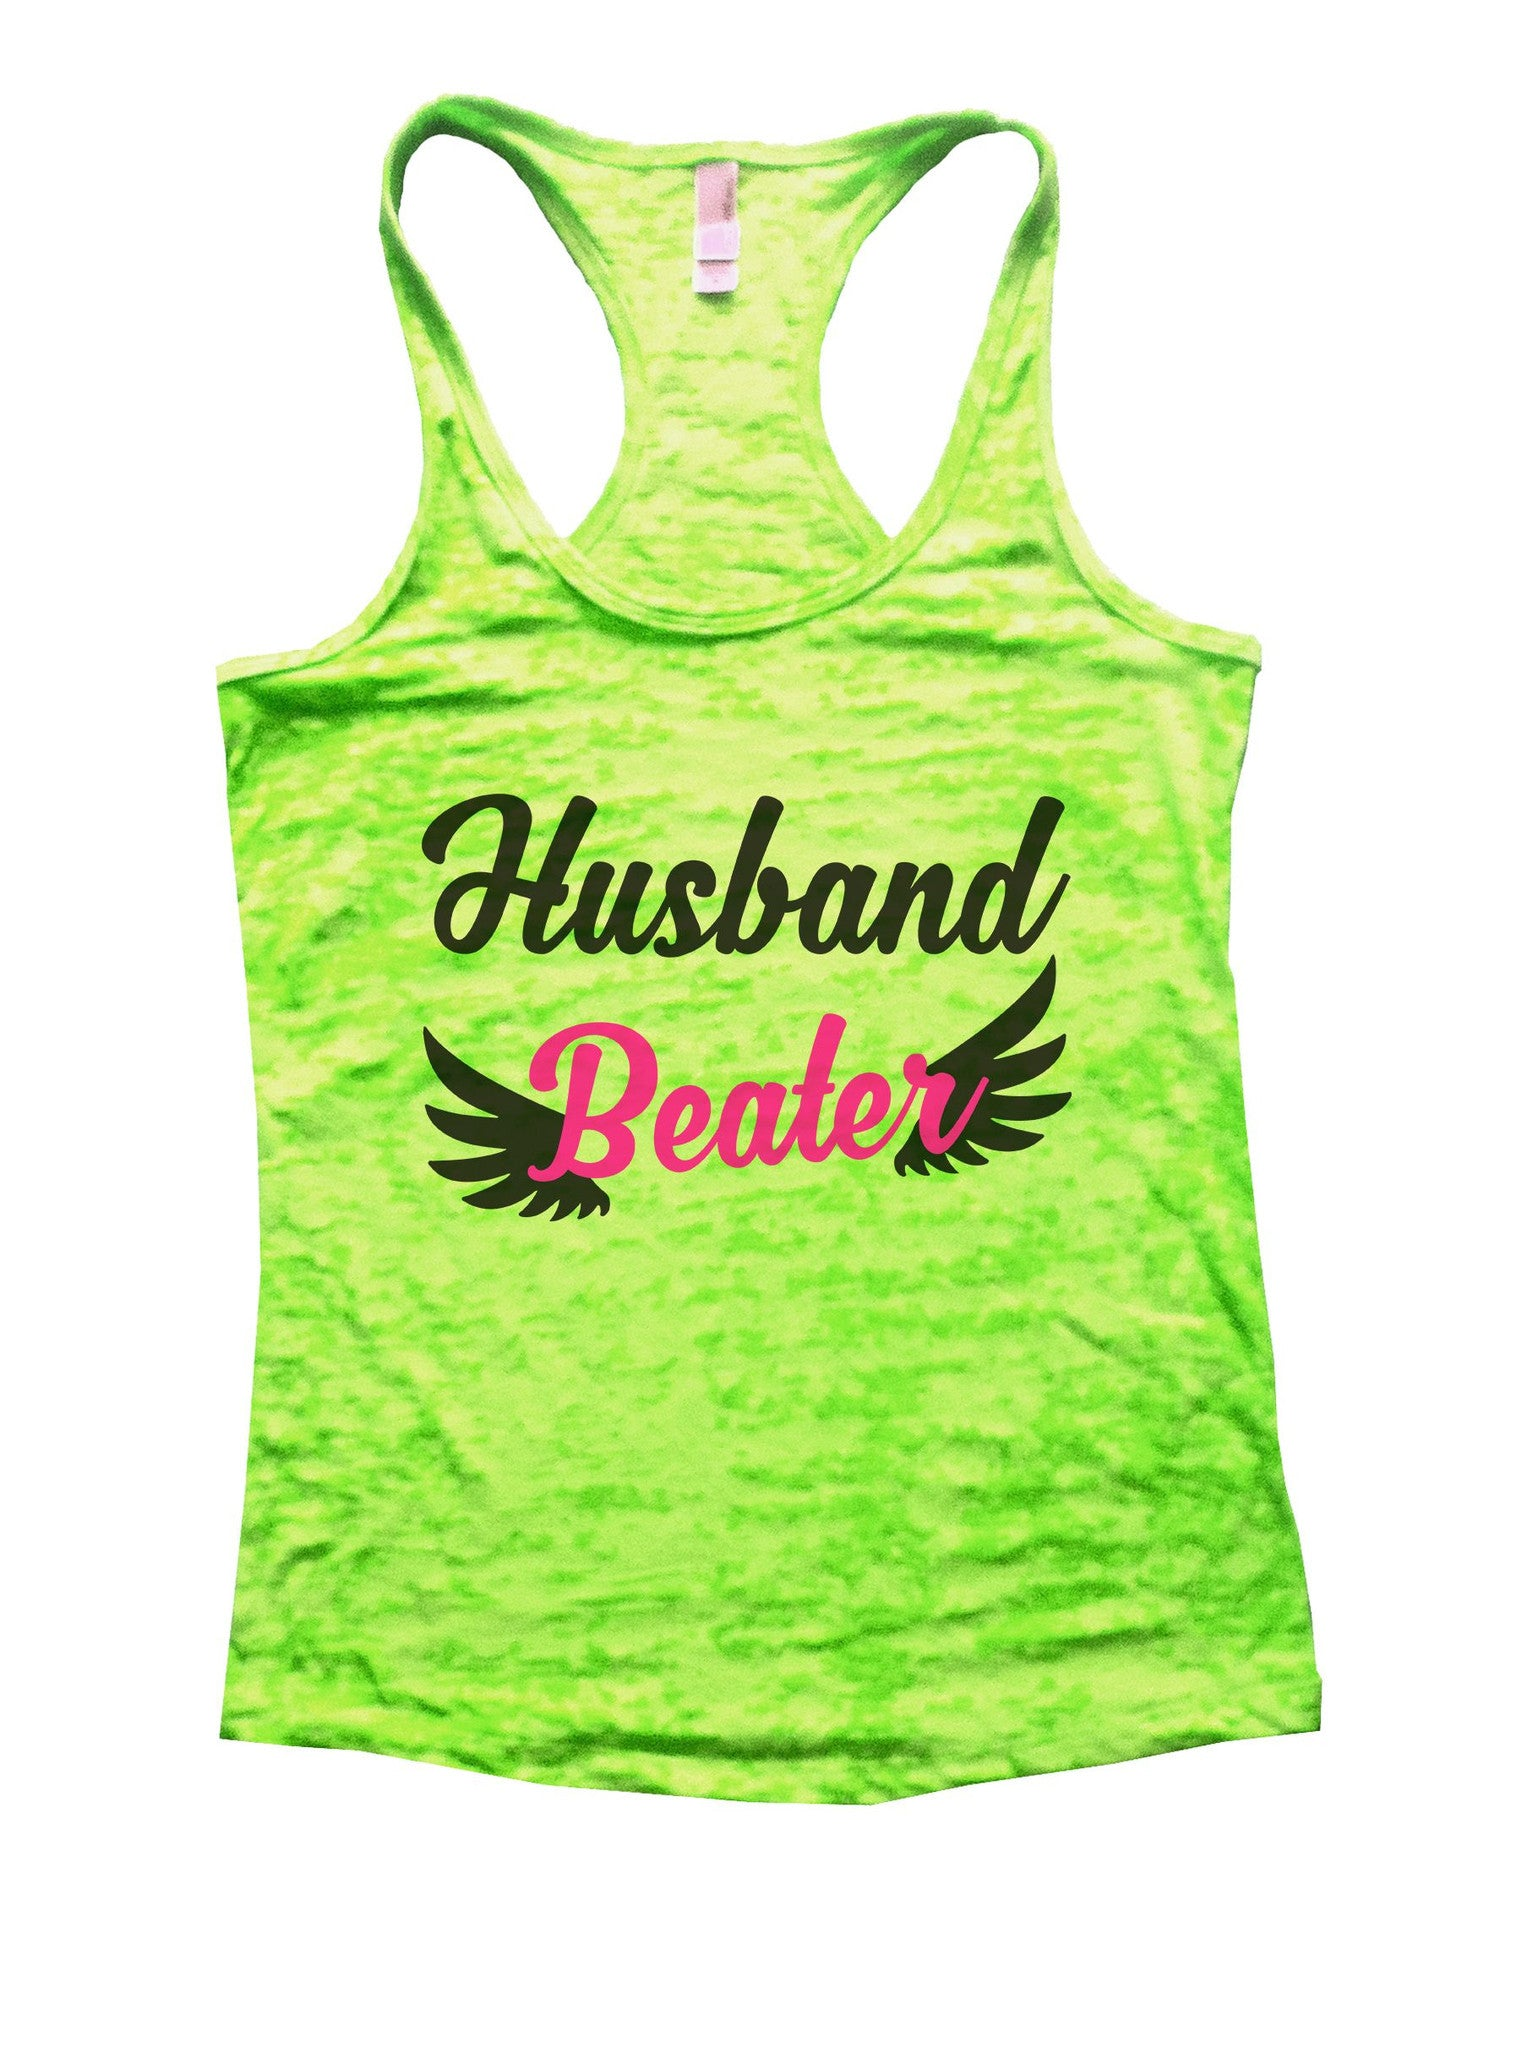 Husband Beater Burnout Tank Top By BurnoutTankTops.com - 1067 - Funny Shirts Tank Tops Burnouts and Triblends  - 1